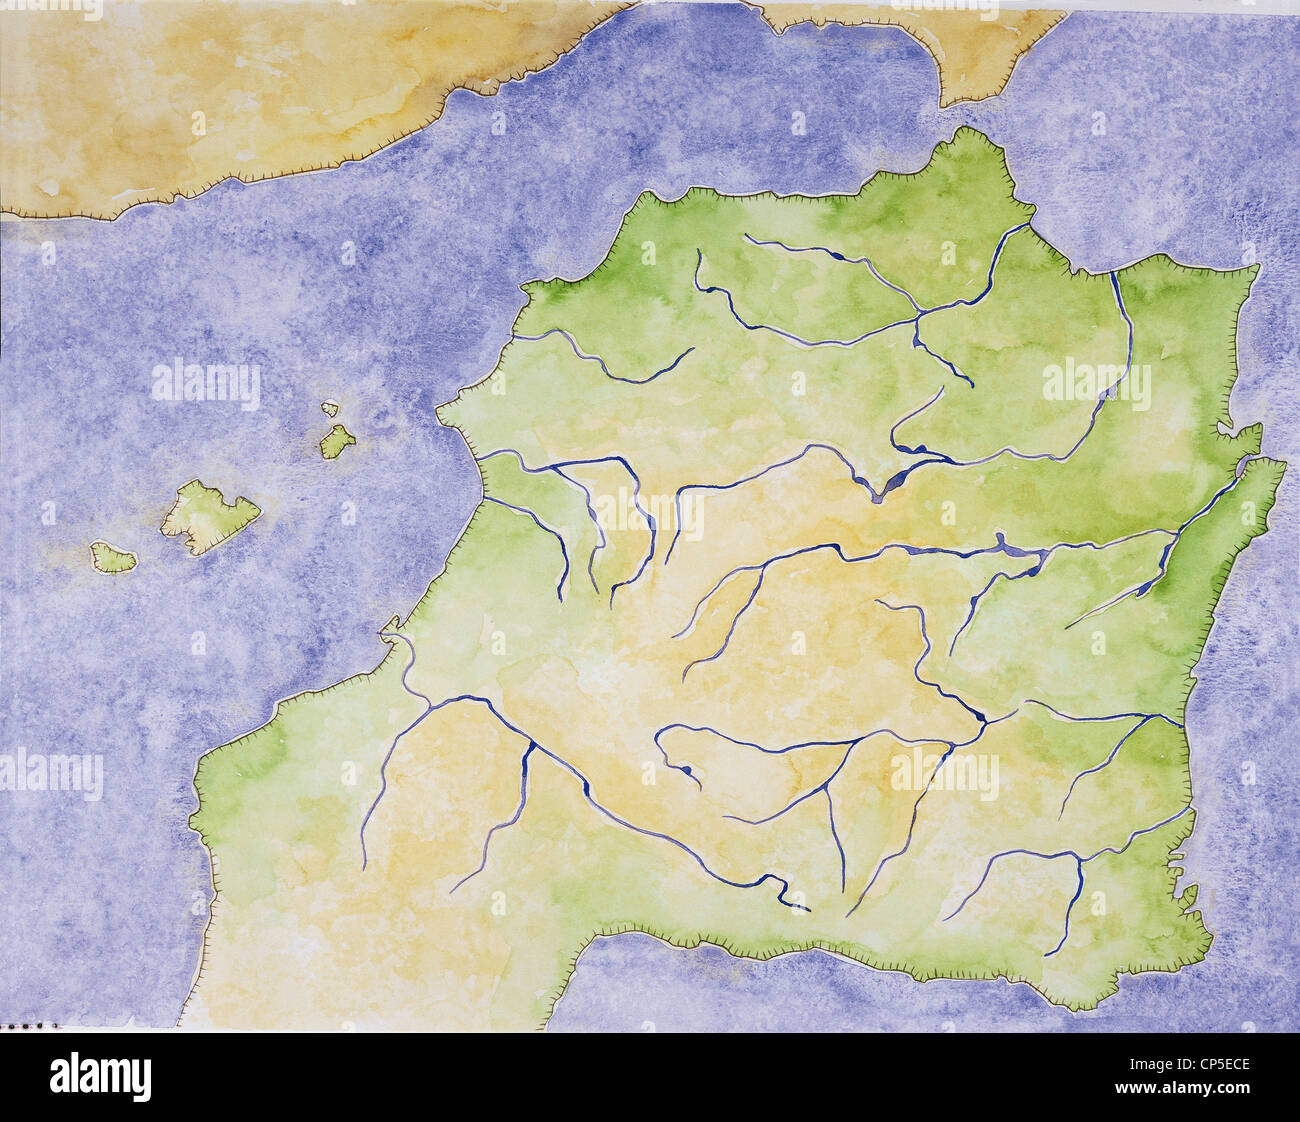 Image of: Cartography Outline Map Of The Iberian Peninsula With The Location Stock Photo Alamy